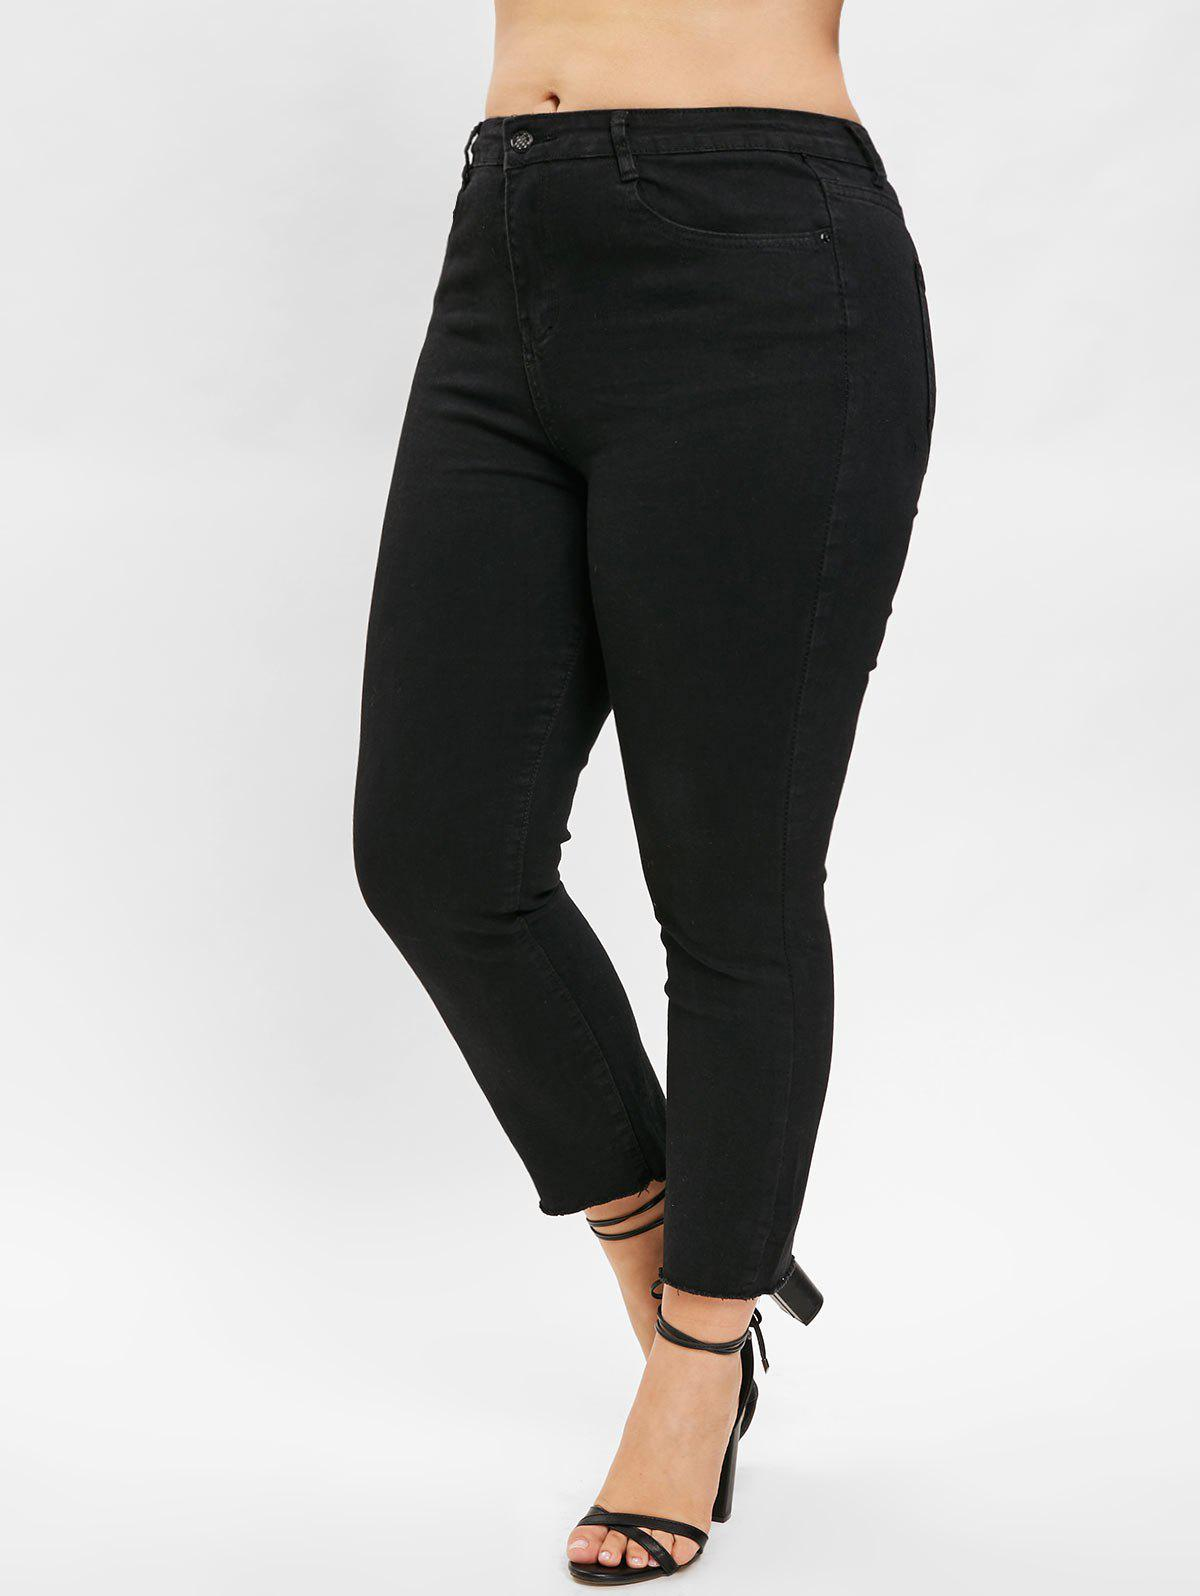 Buy Plus Size Plain Jeans with Zipper Fly